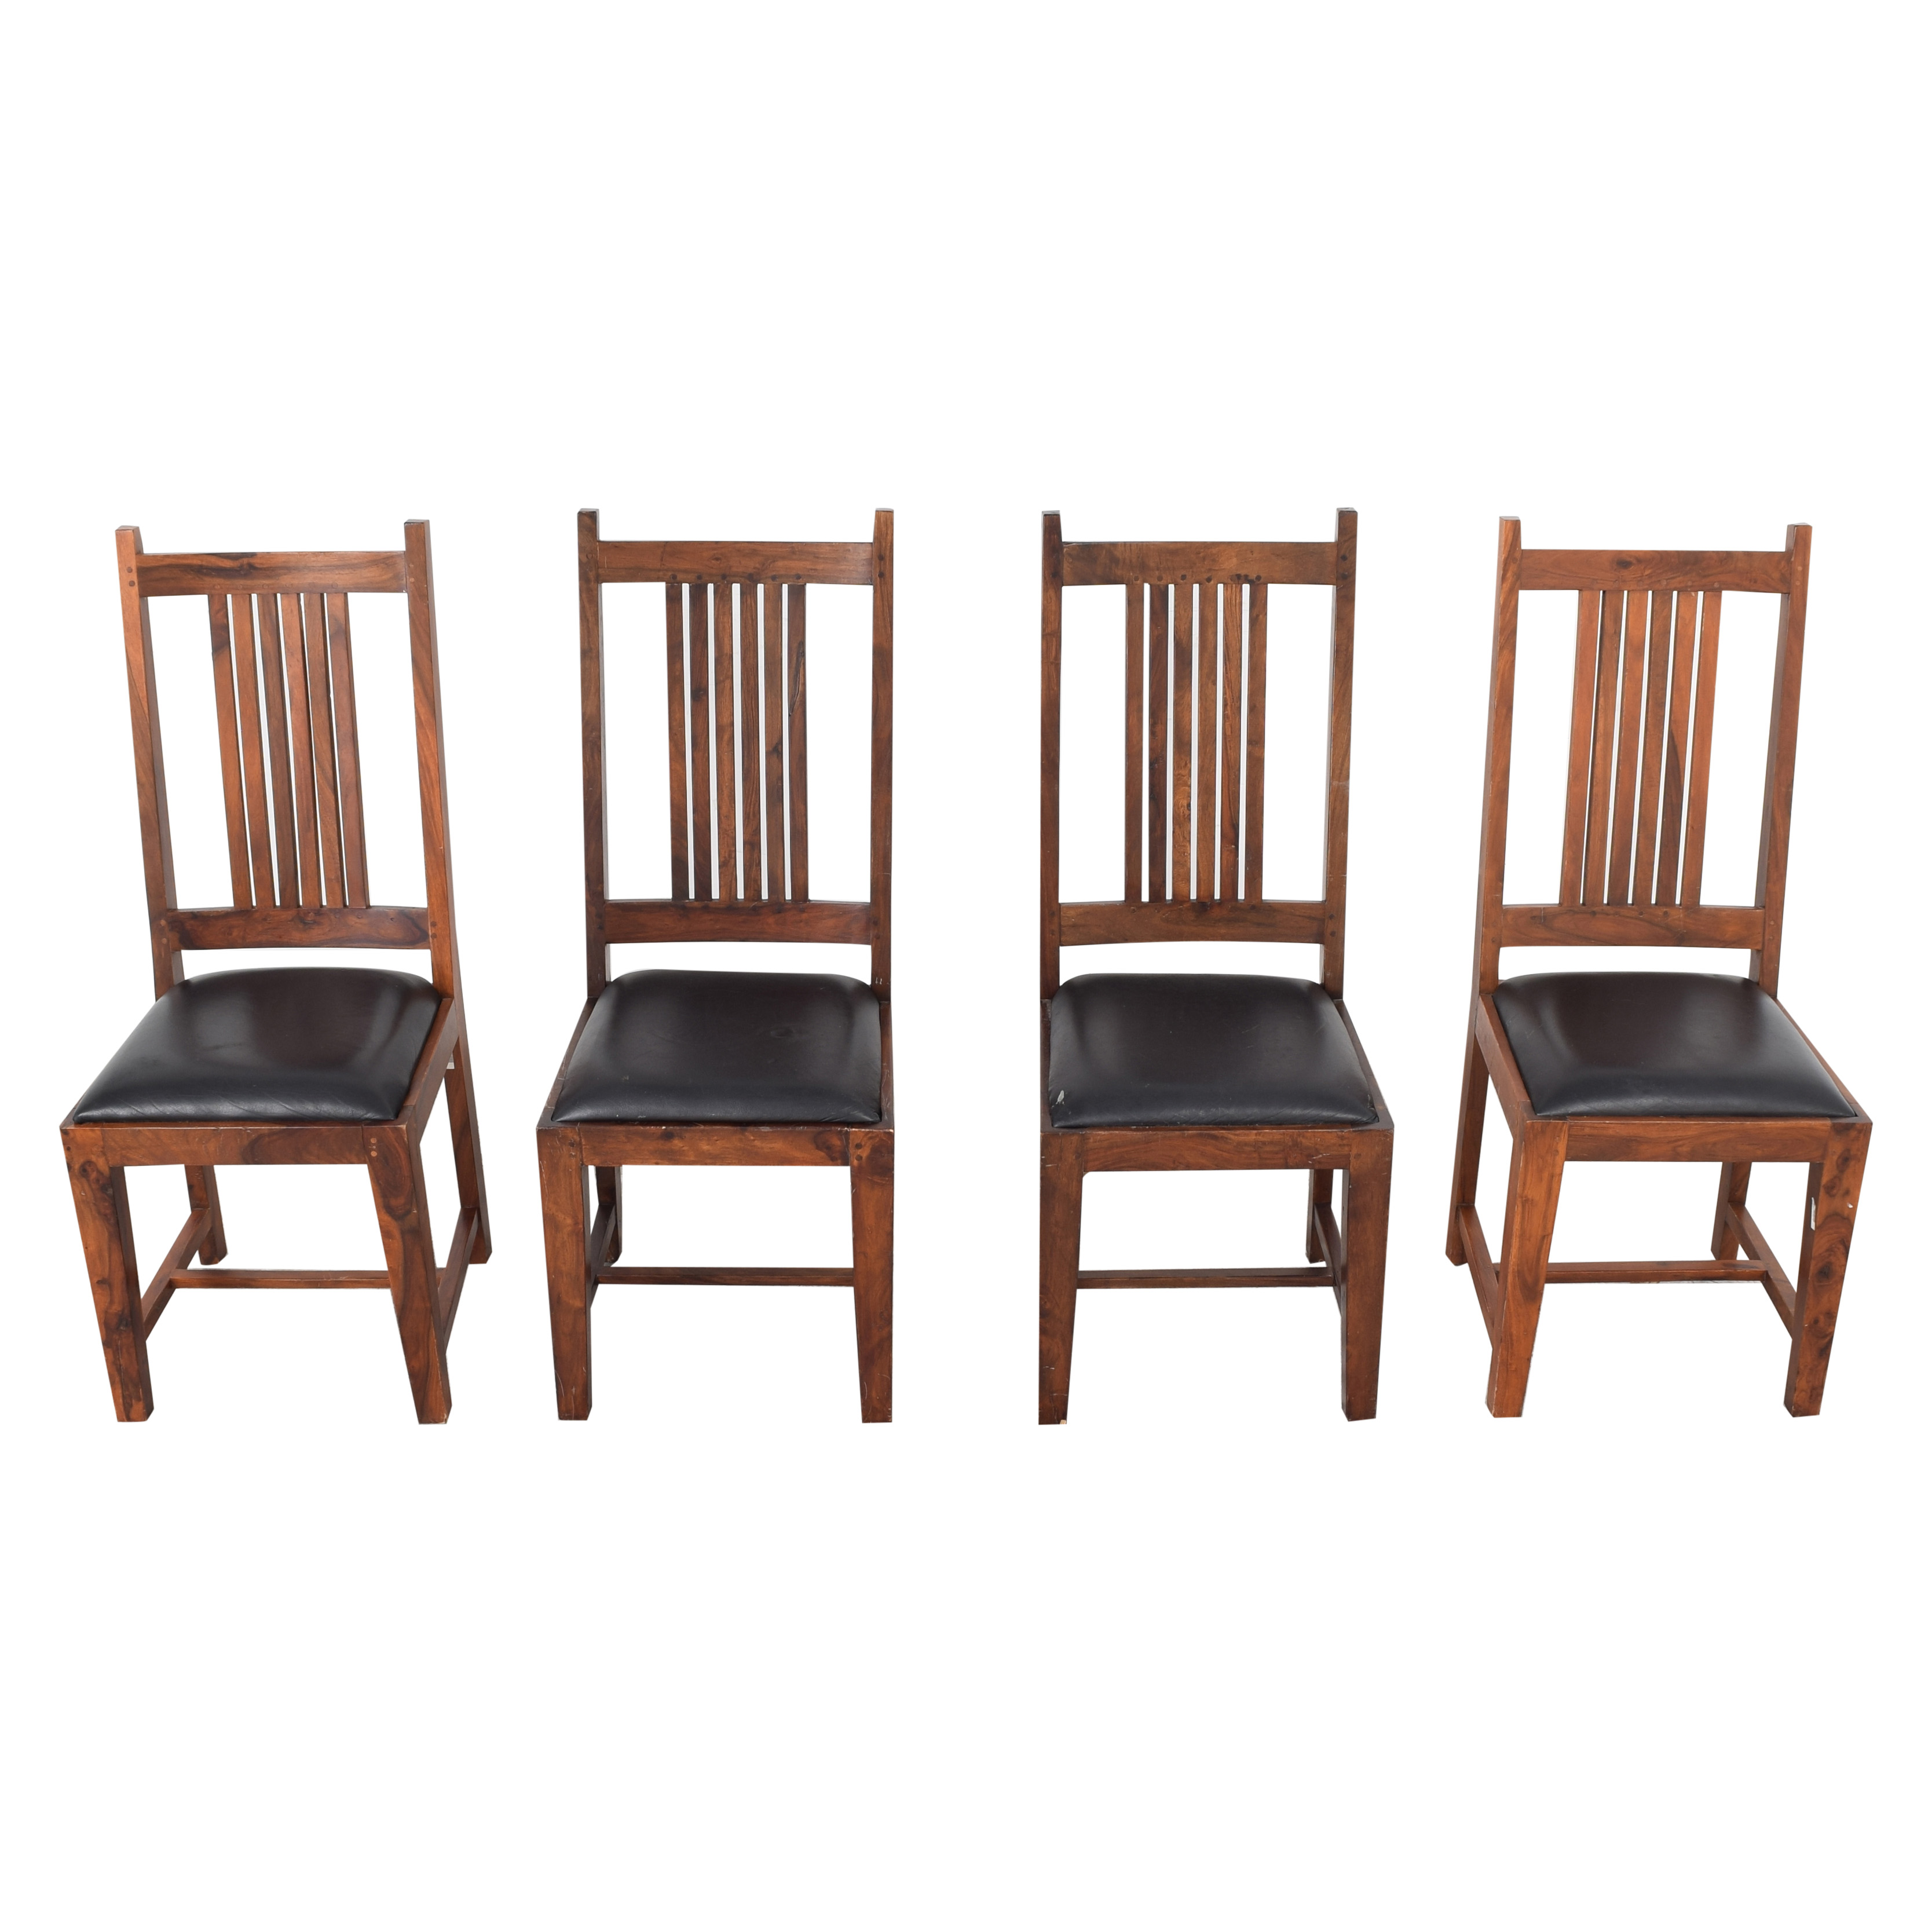 buy ABC Carpet & Home Dining Chairs ABC Carpet & Home